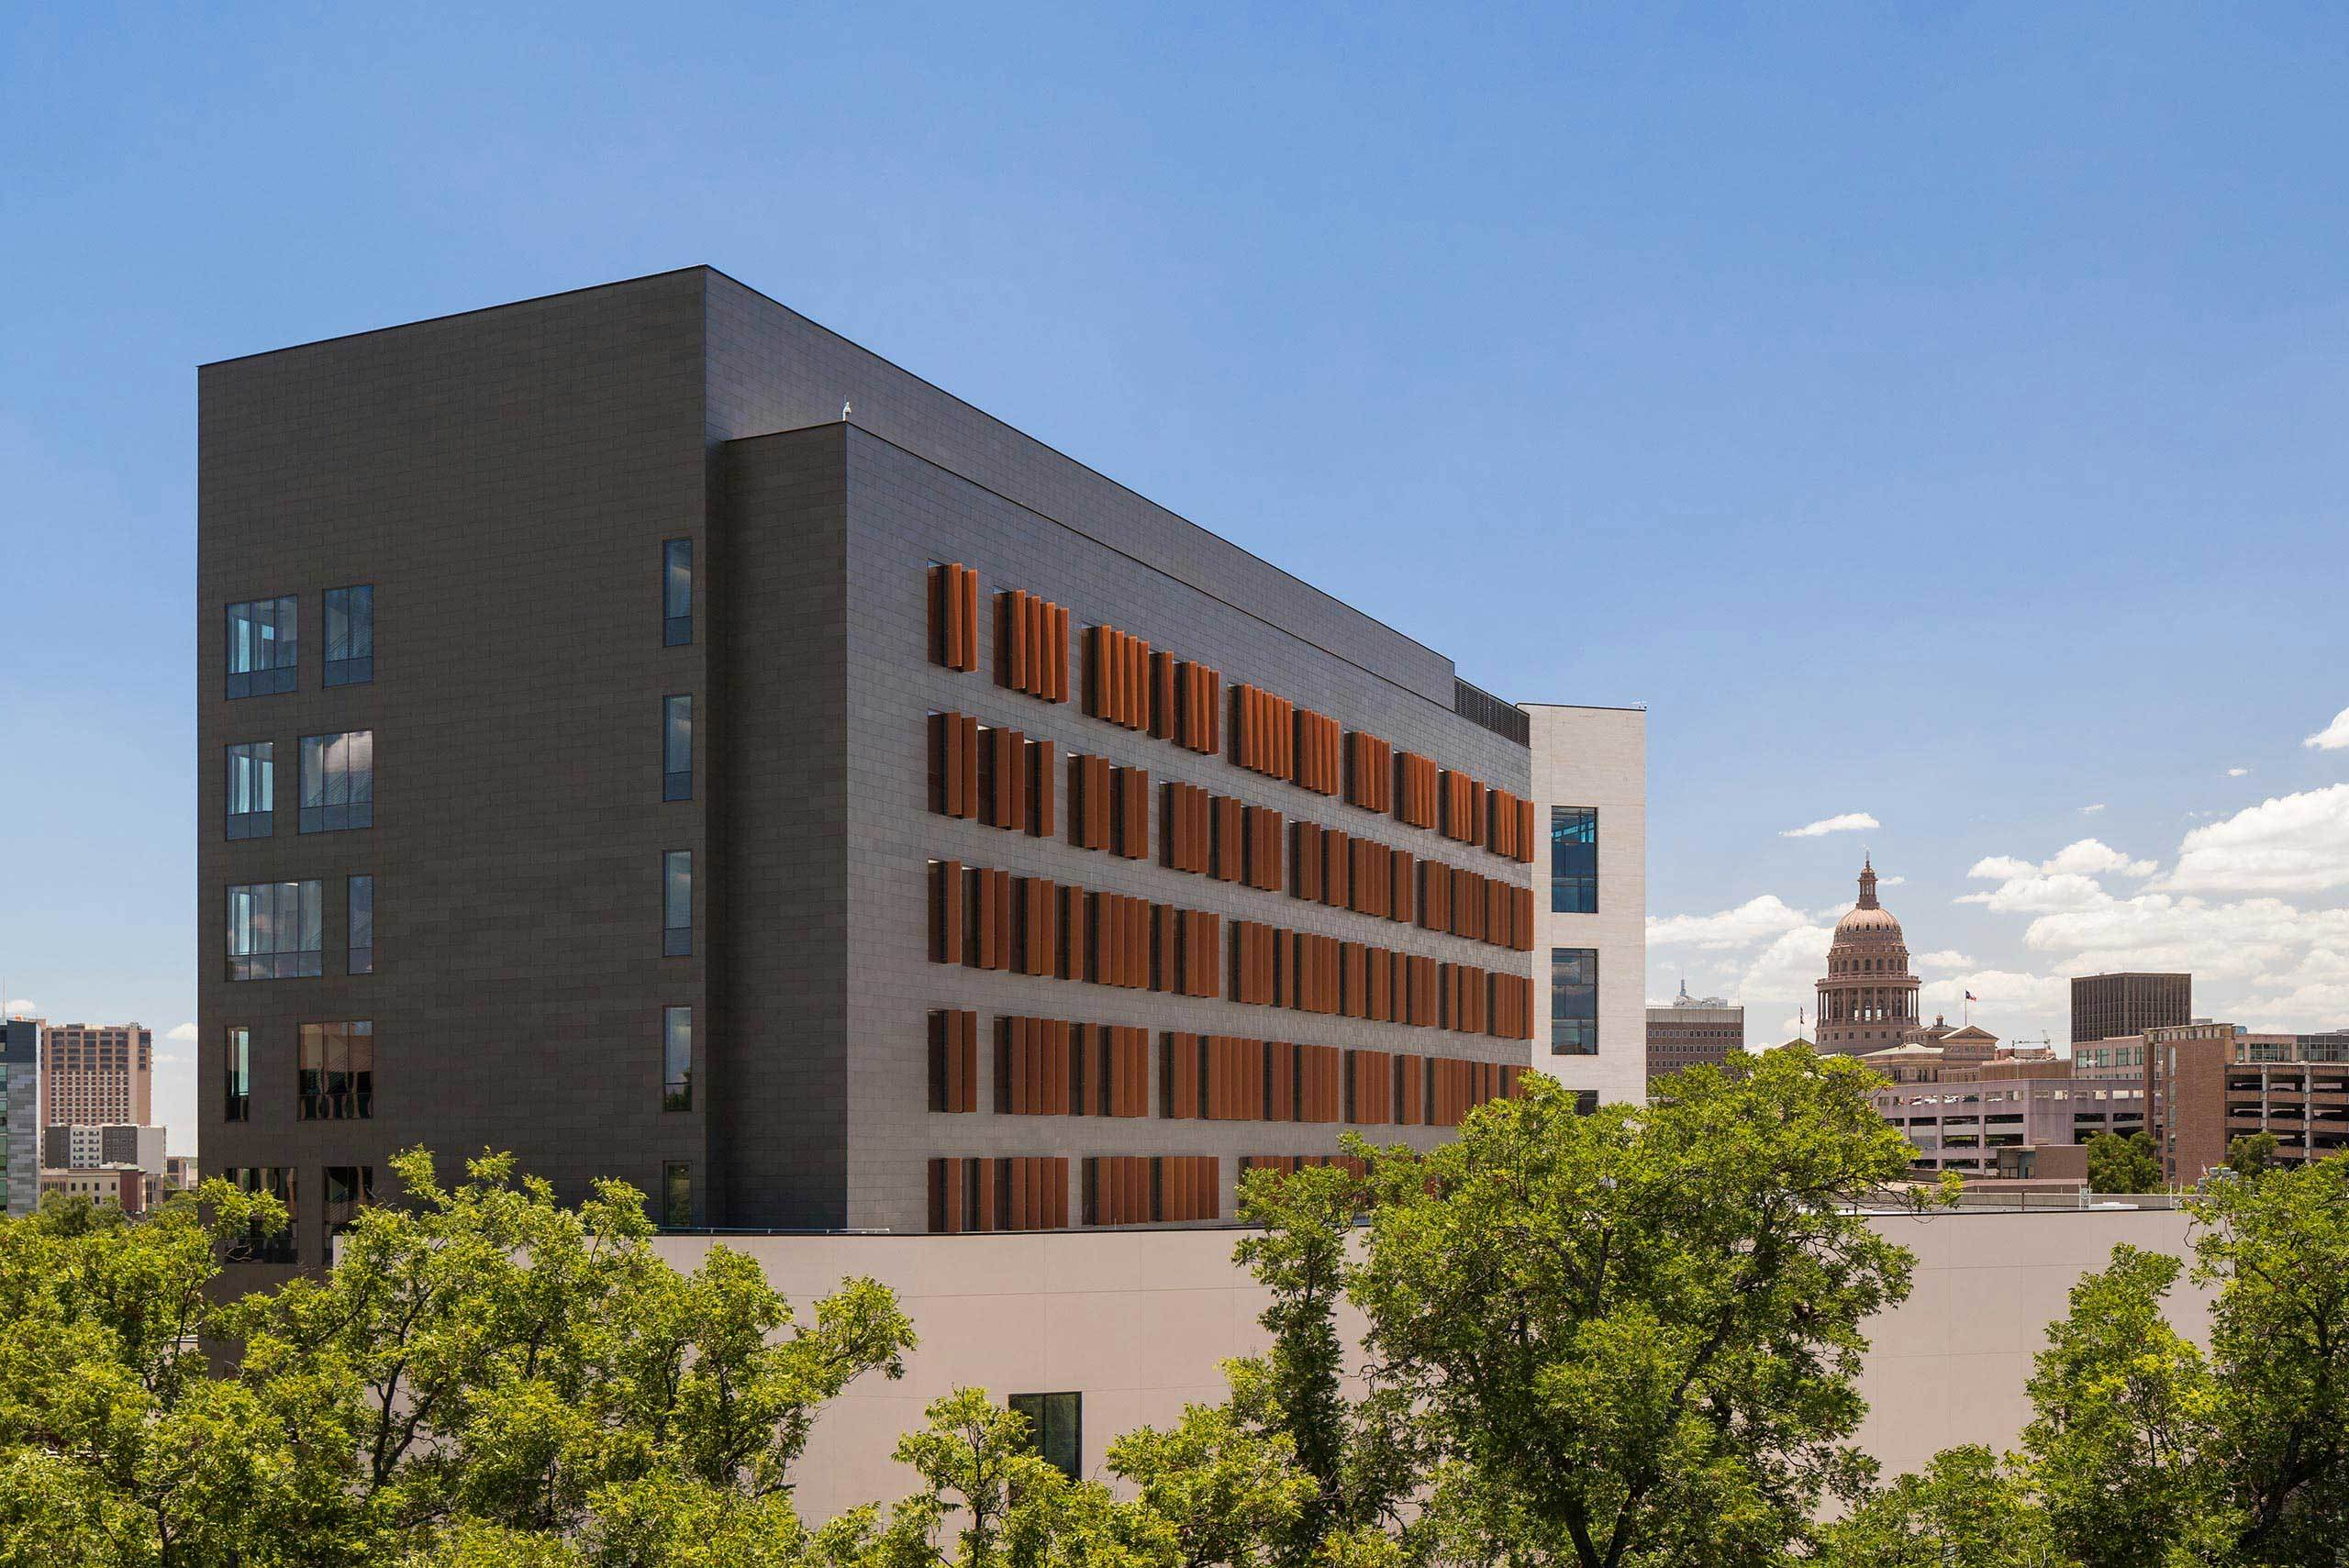 Dell Med Health Discovery Building with the Texas Capitol in the background.